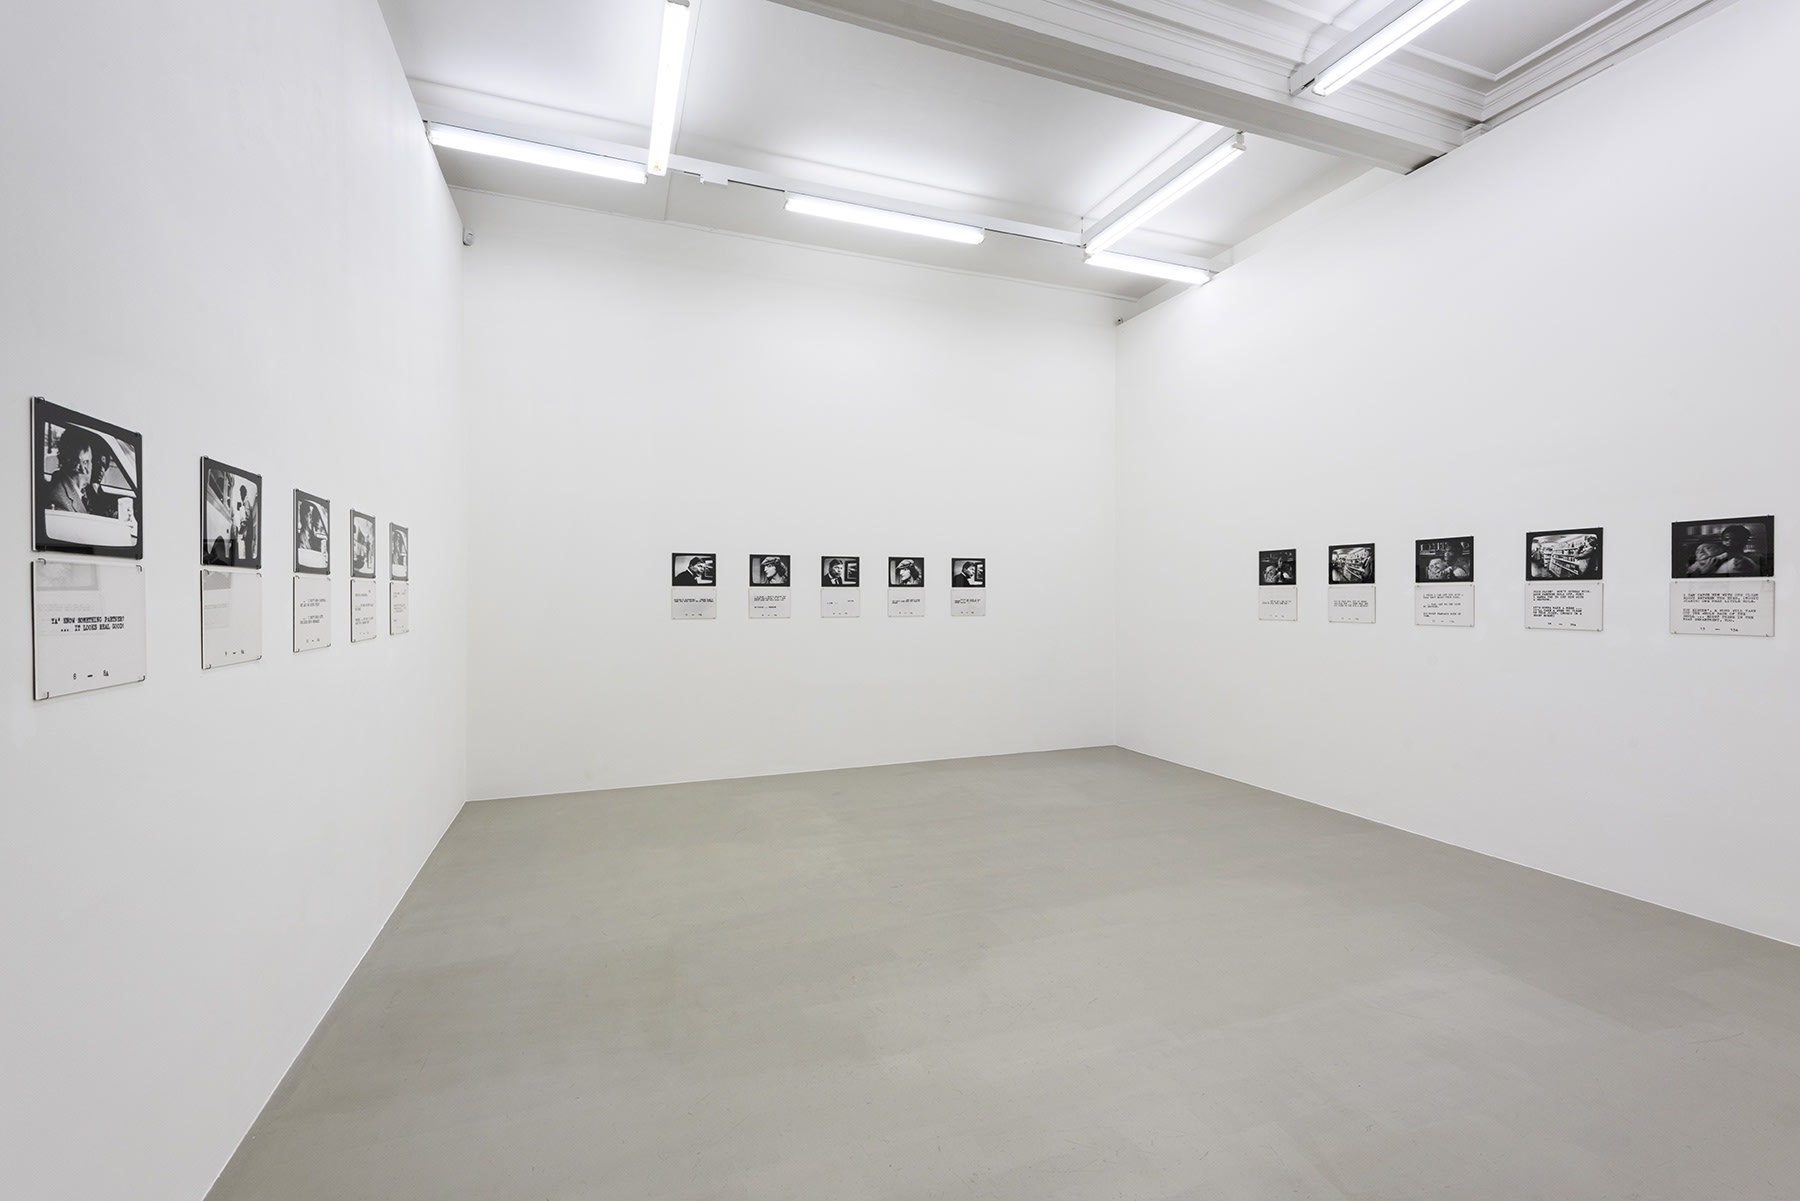 15 black and white photographs are displayed with text underneath.